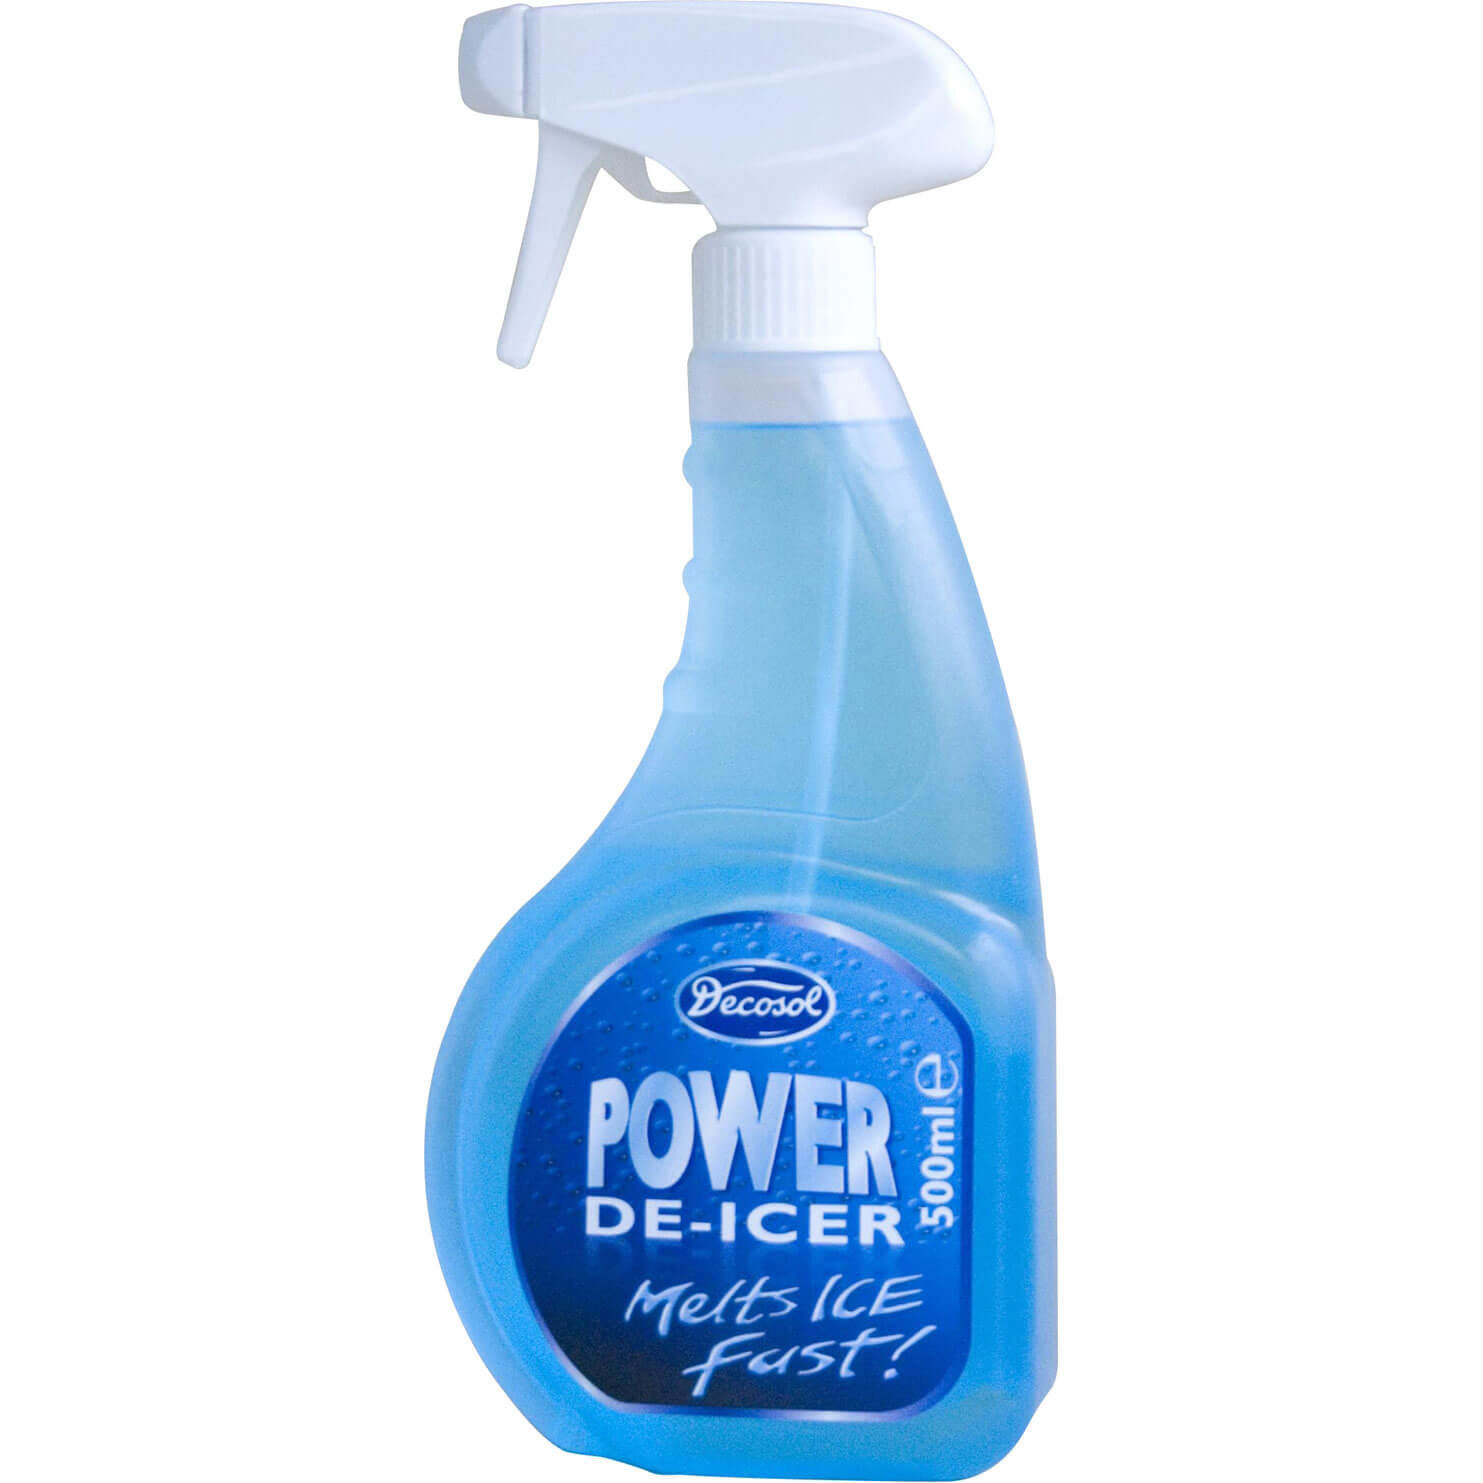 Image of Decosol Power De-Icer Spray 0.5l